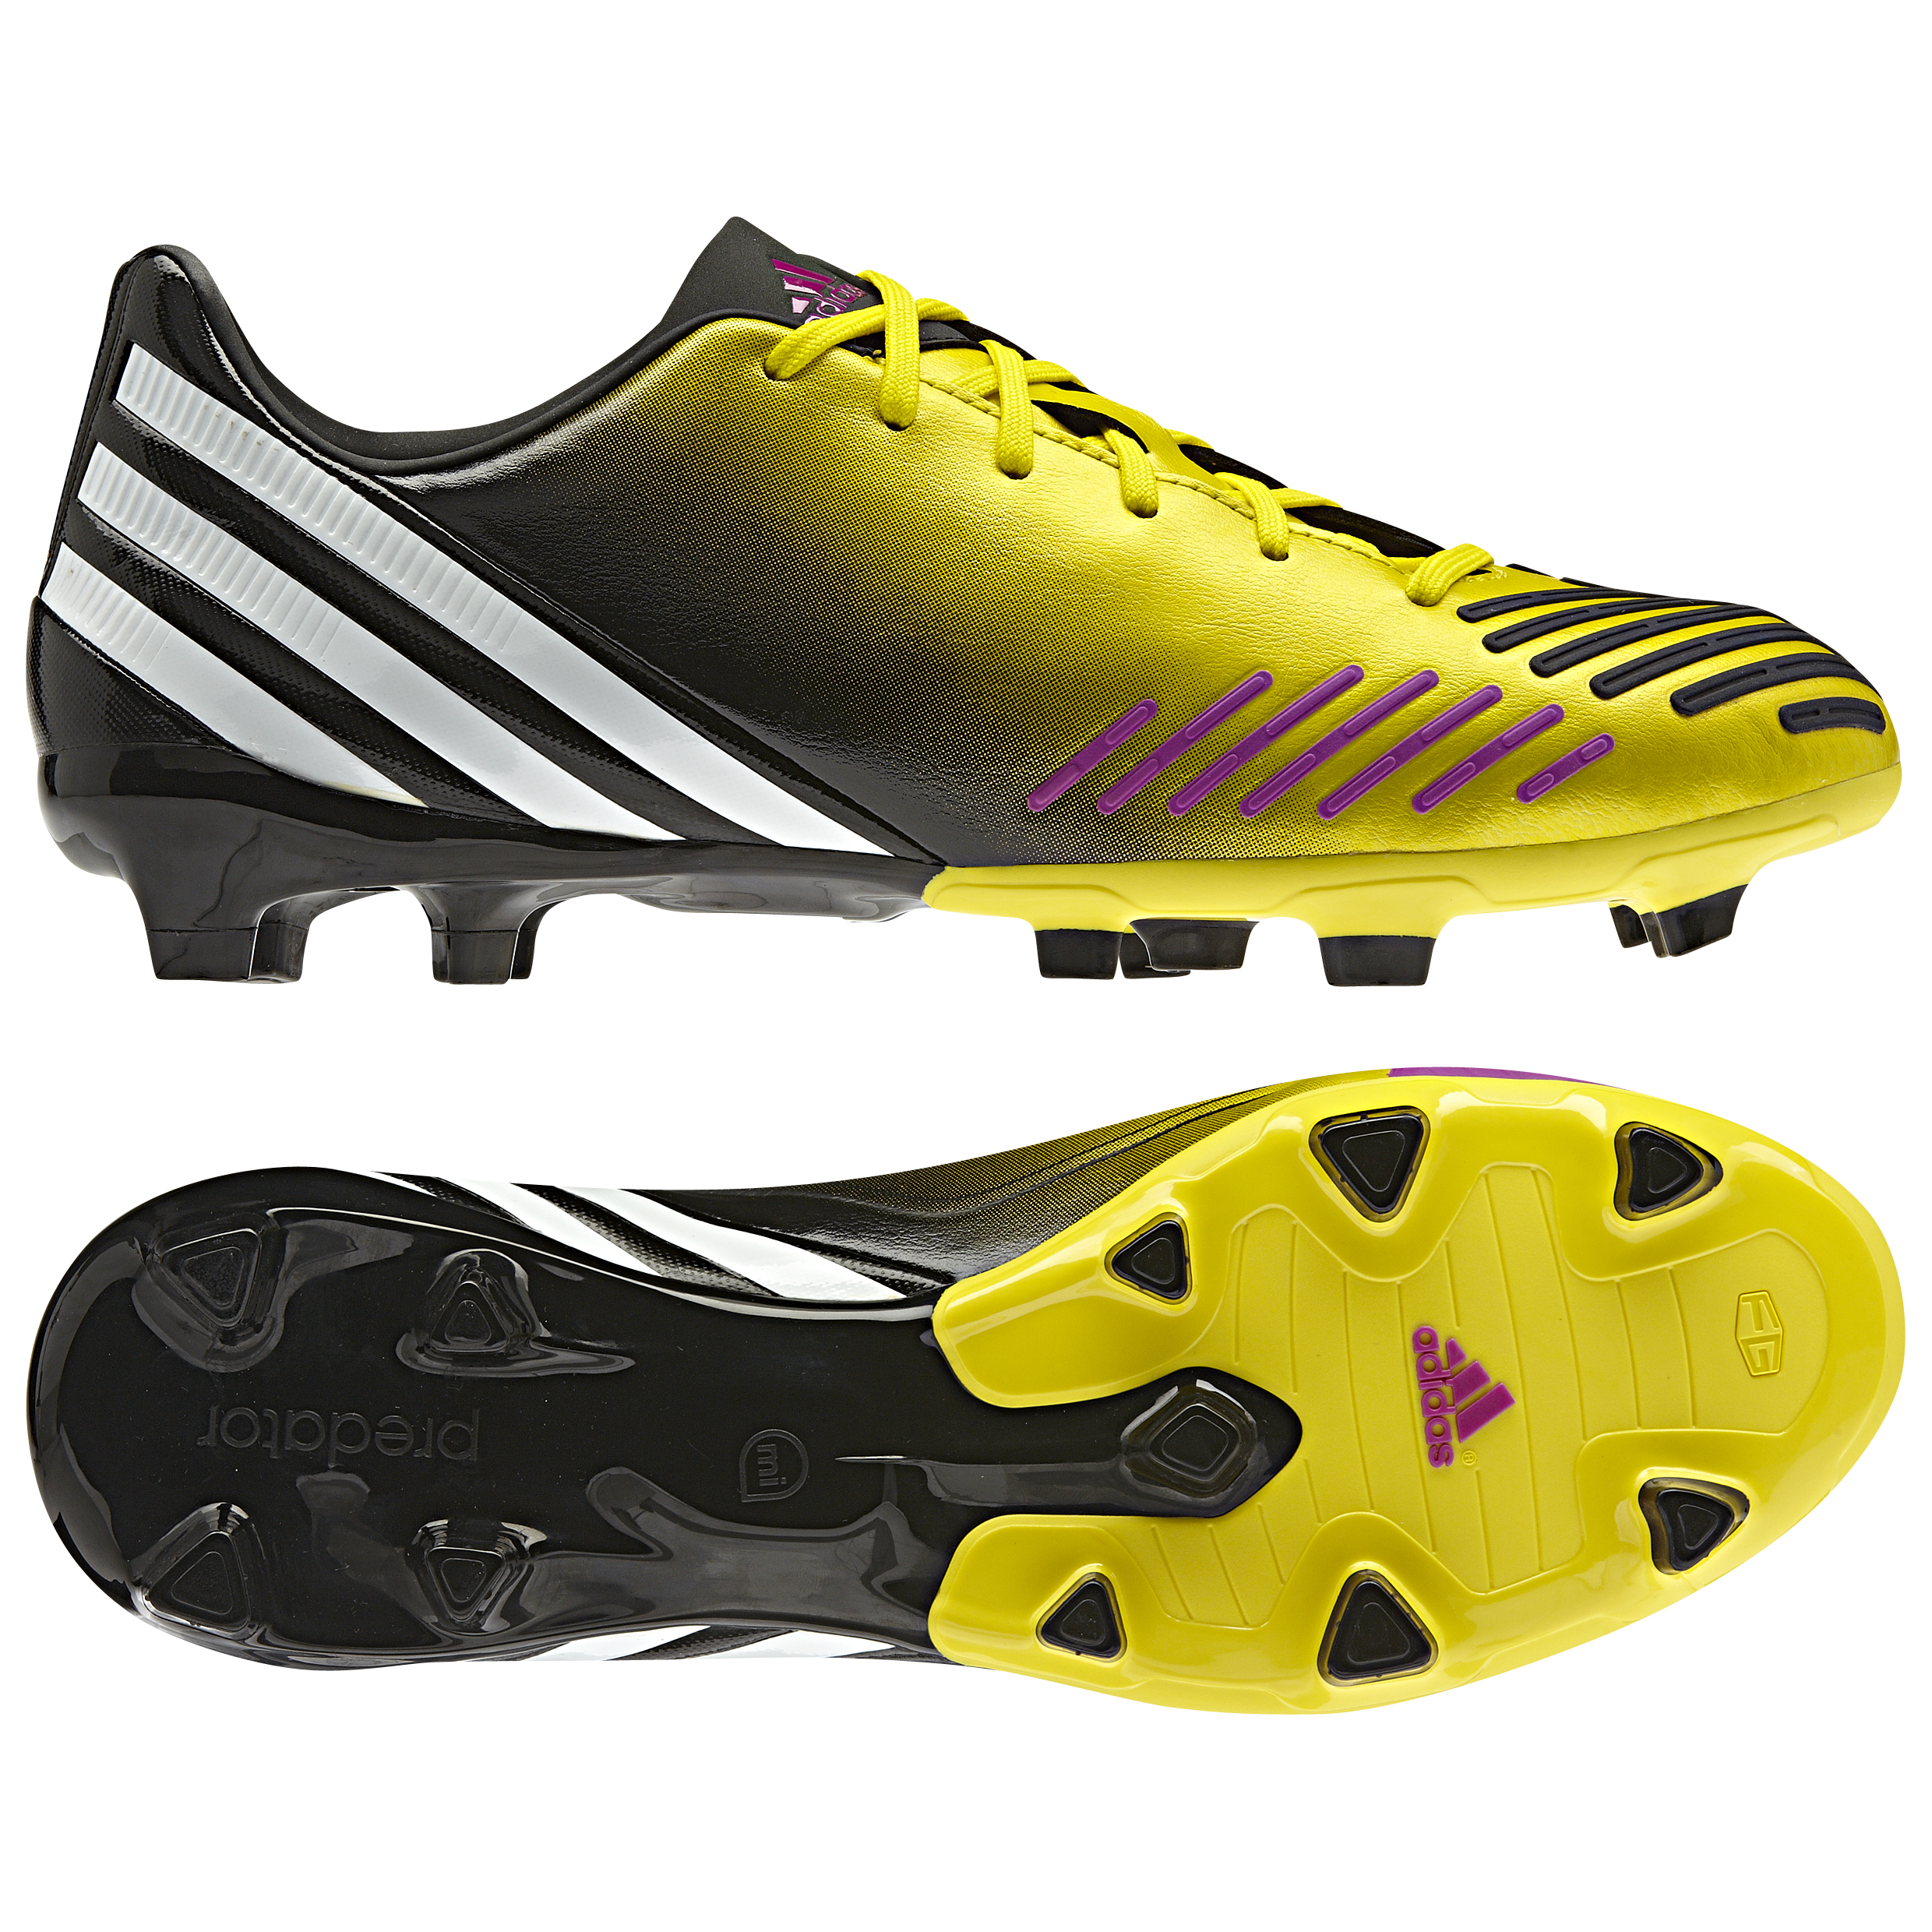 Adidas Predator Absolion LZ TRX Firm Ground Football Boots - Vivid Yellow/White/Vivid Pink